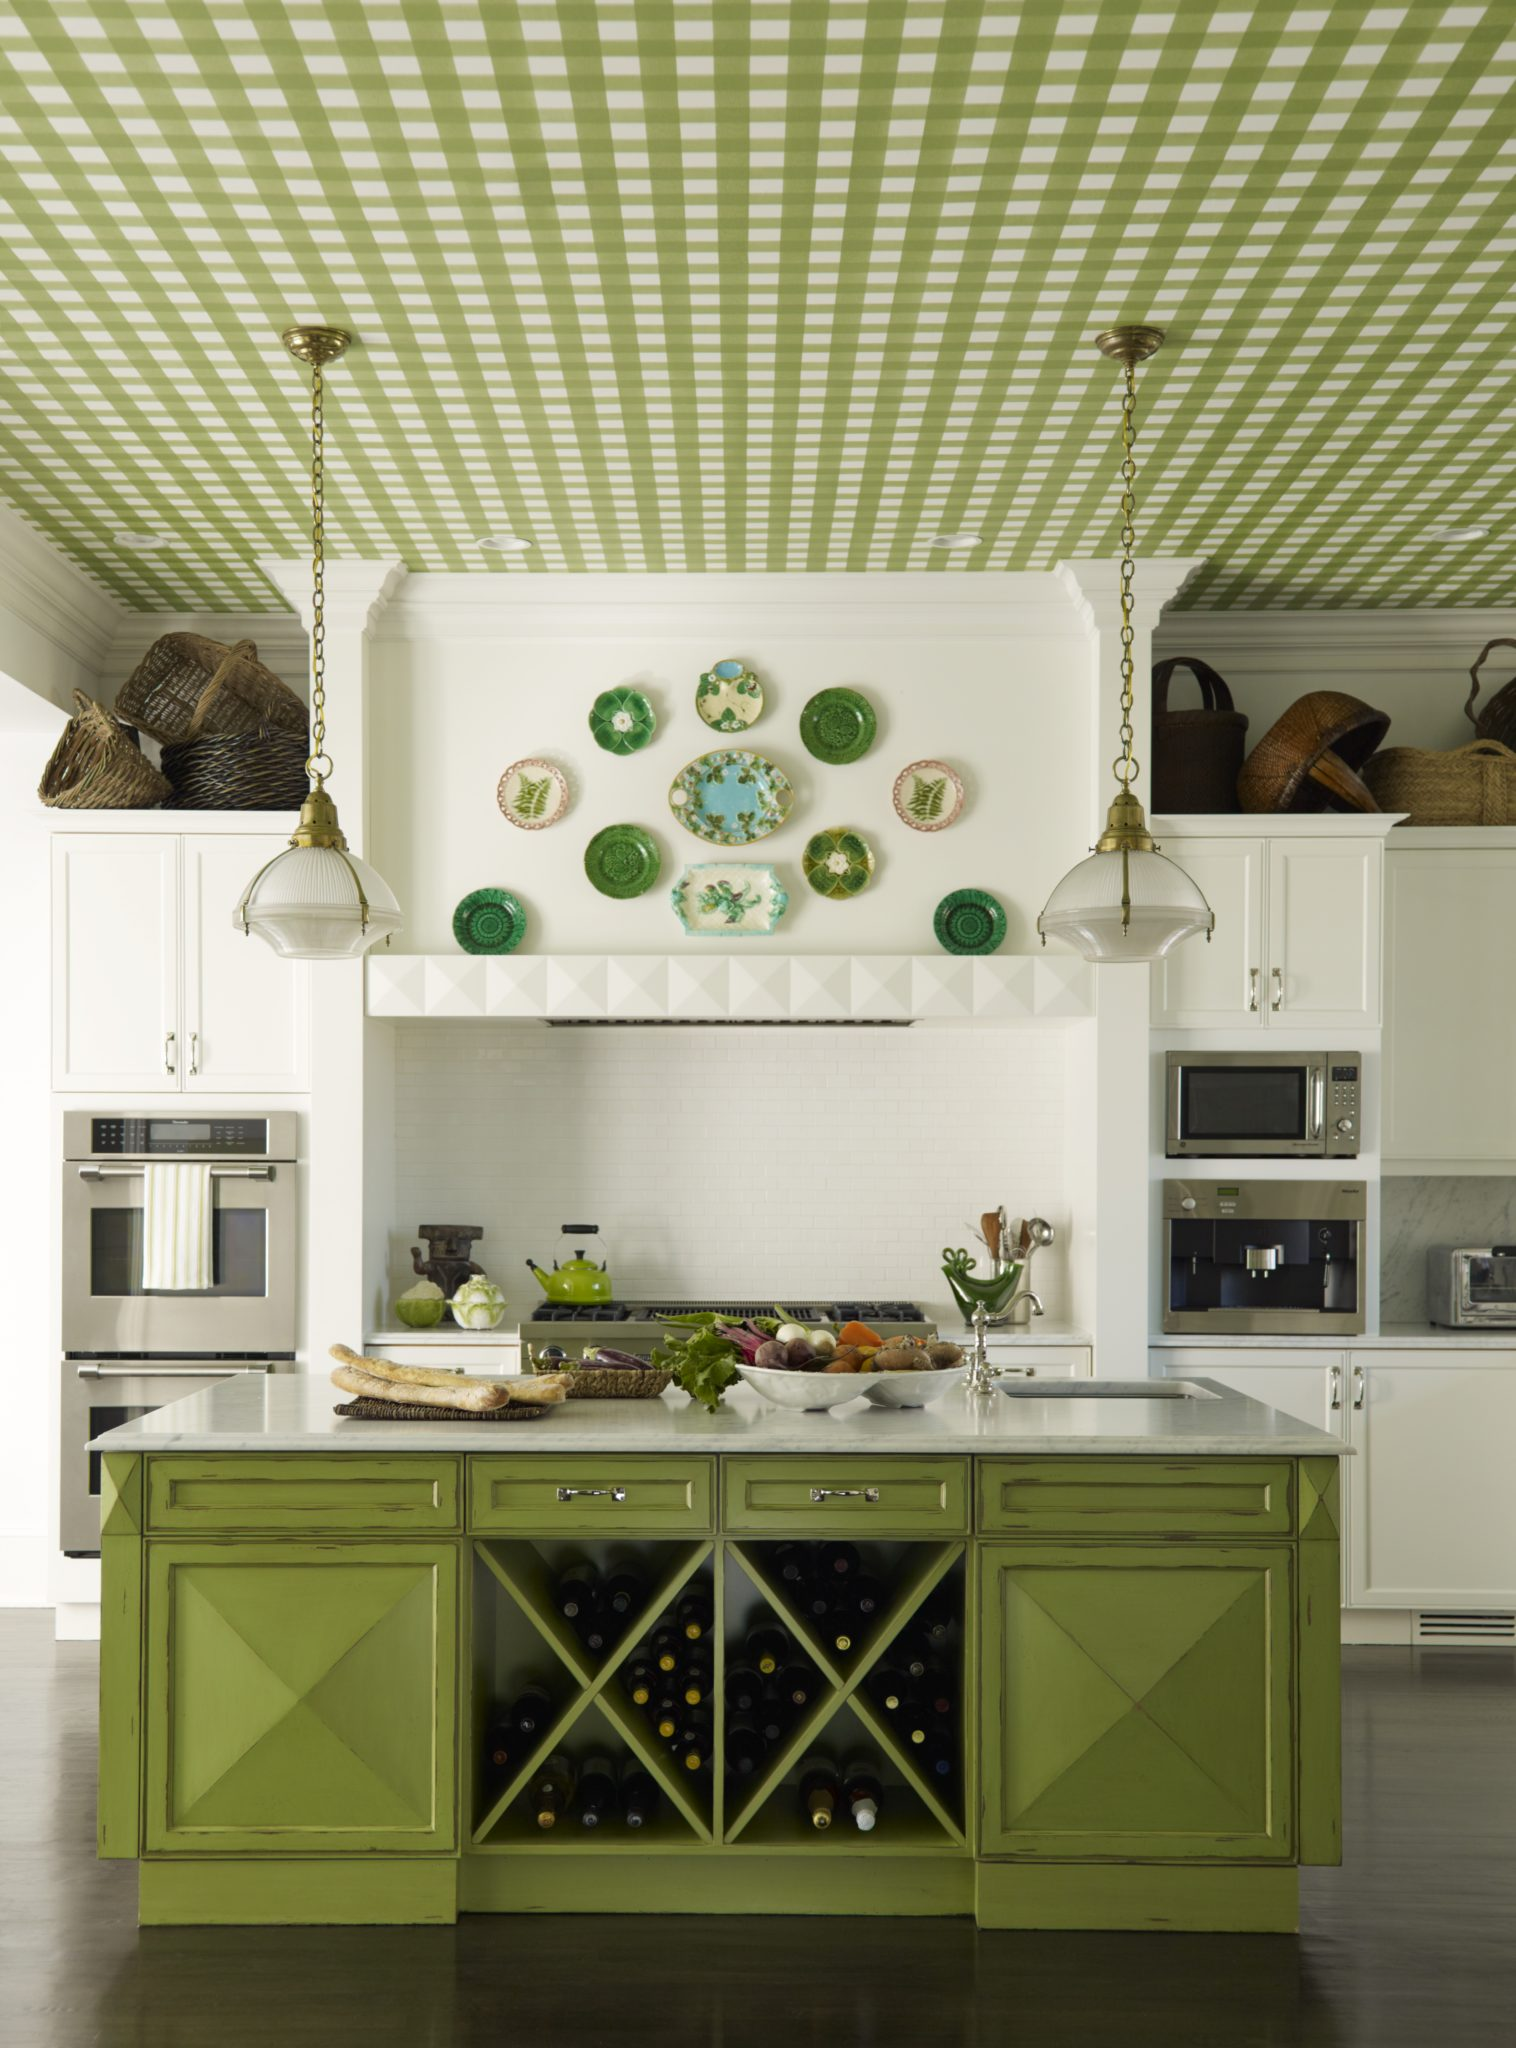 Purchase green kitchen with gingham wallpapered ceiling and island wine storage by Mendelson Group, Inc.